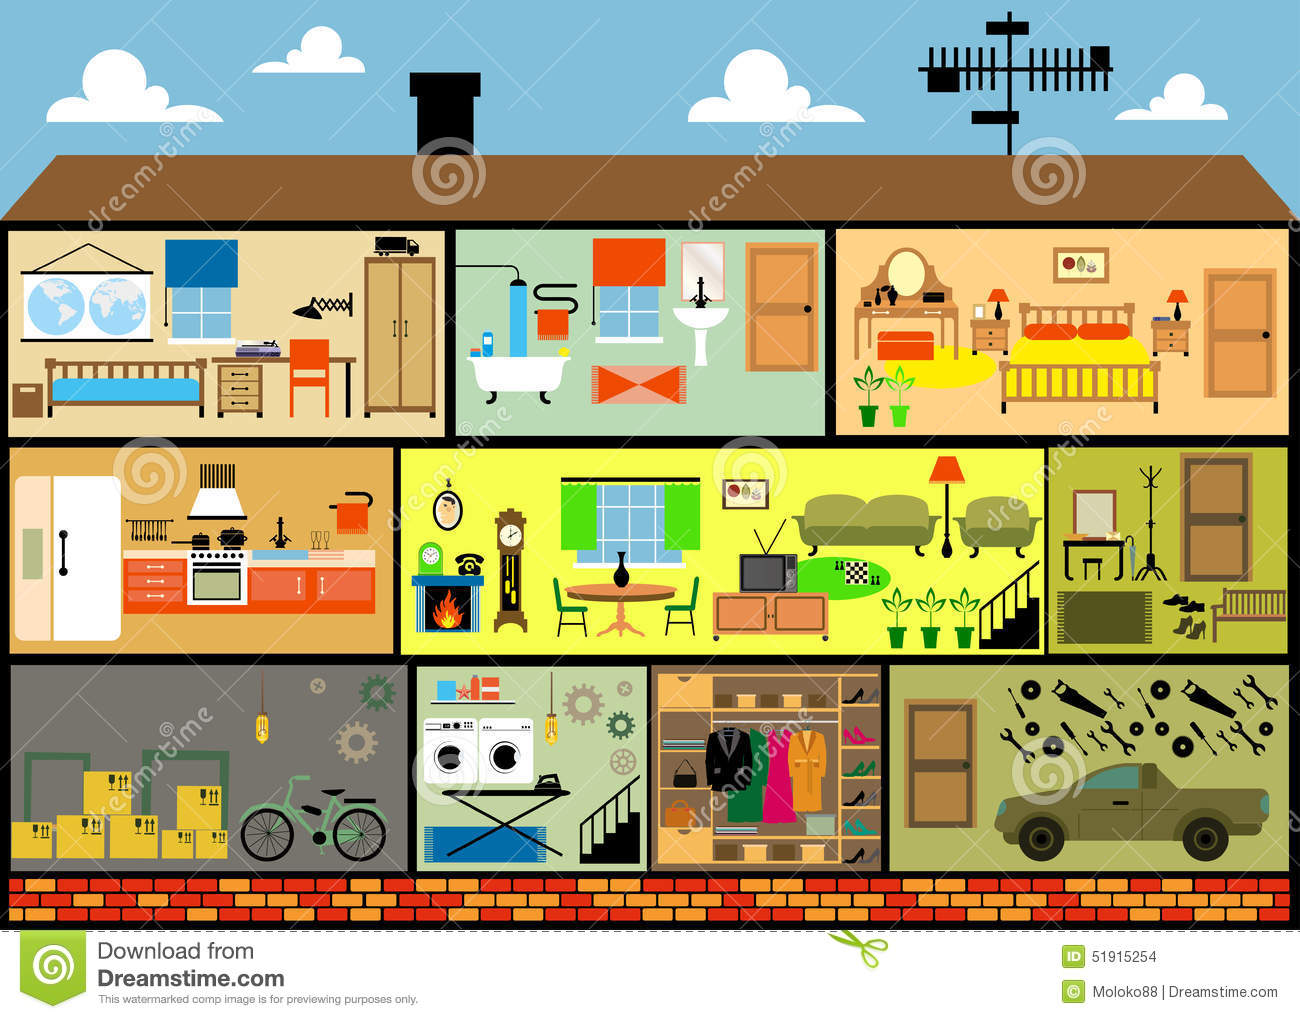 Cartoon Family House Stock Vector Image 51915254 : cartoon family house interior living rooms furniture 51915254 from www.dreamstime.com size 1300 x 1019 jpeg 200kB